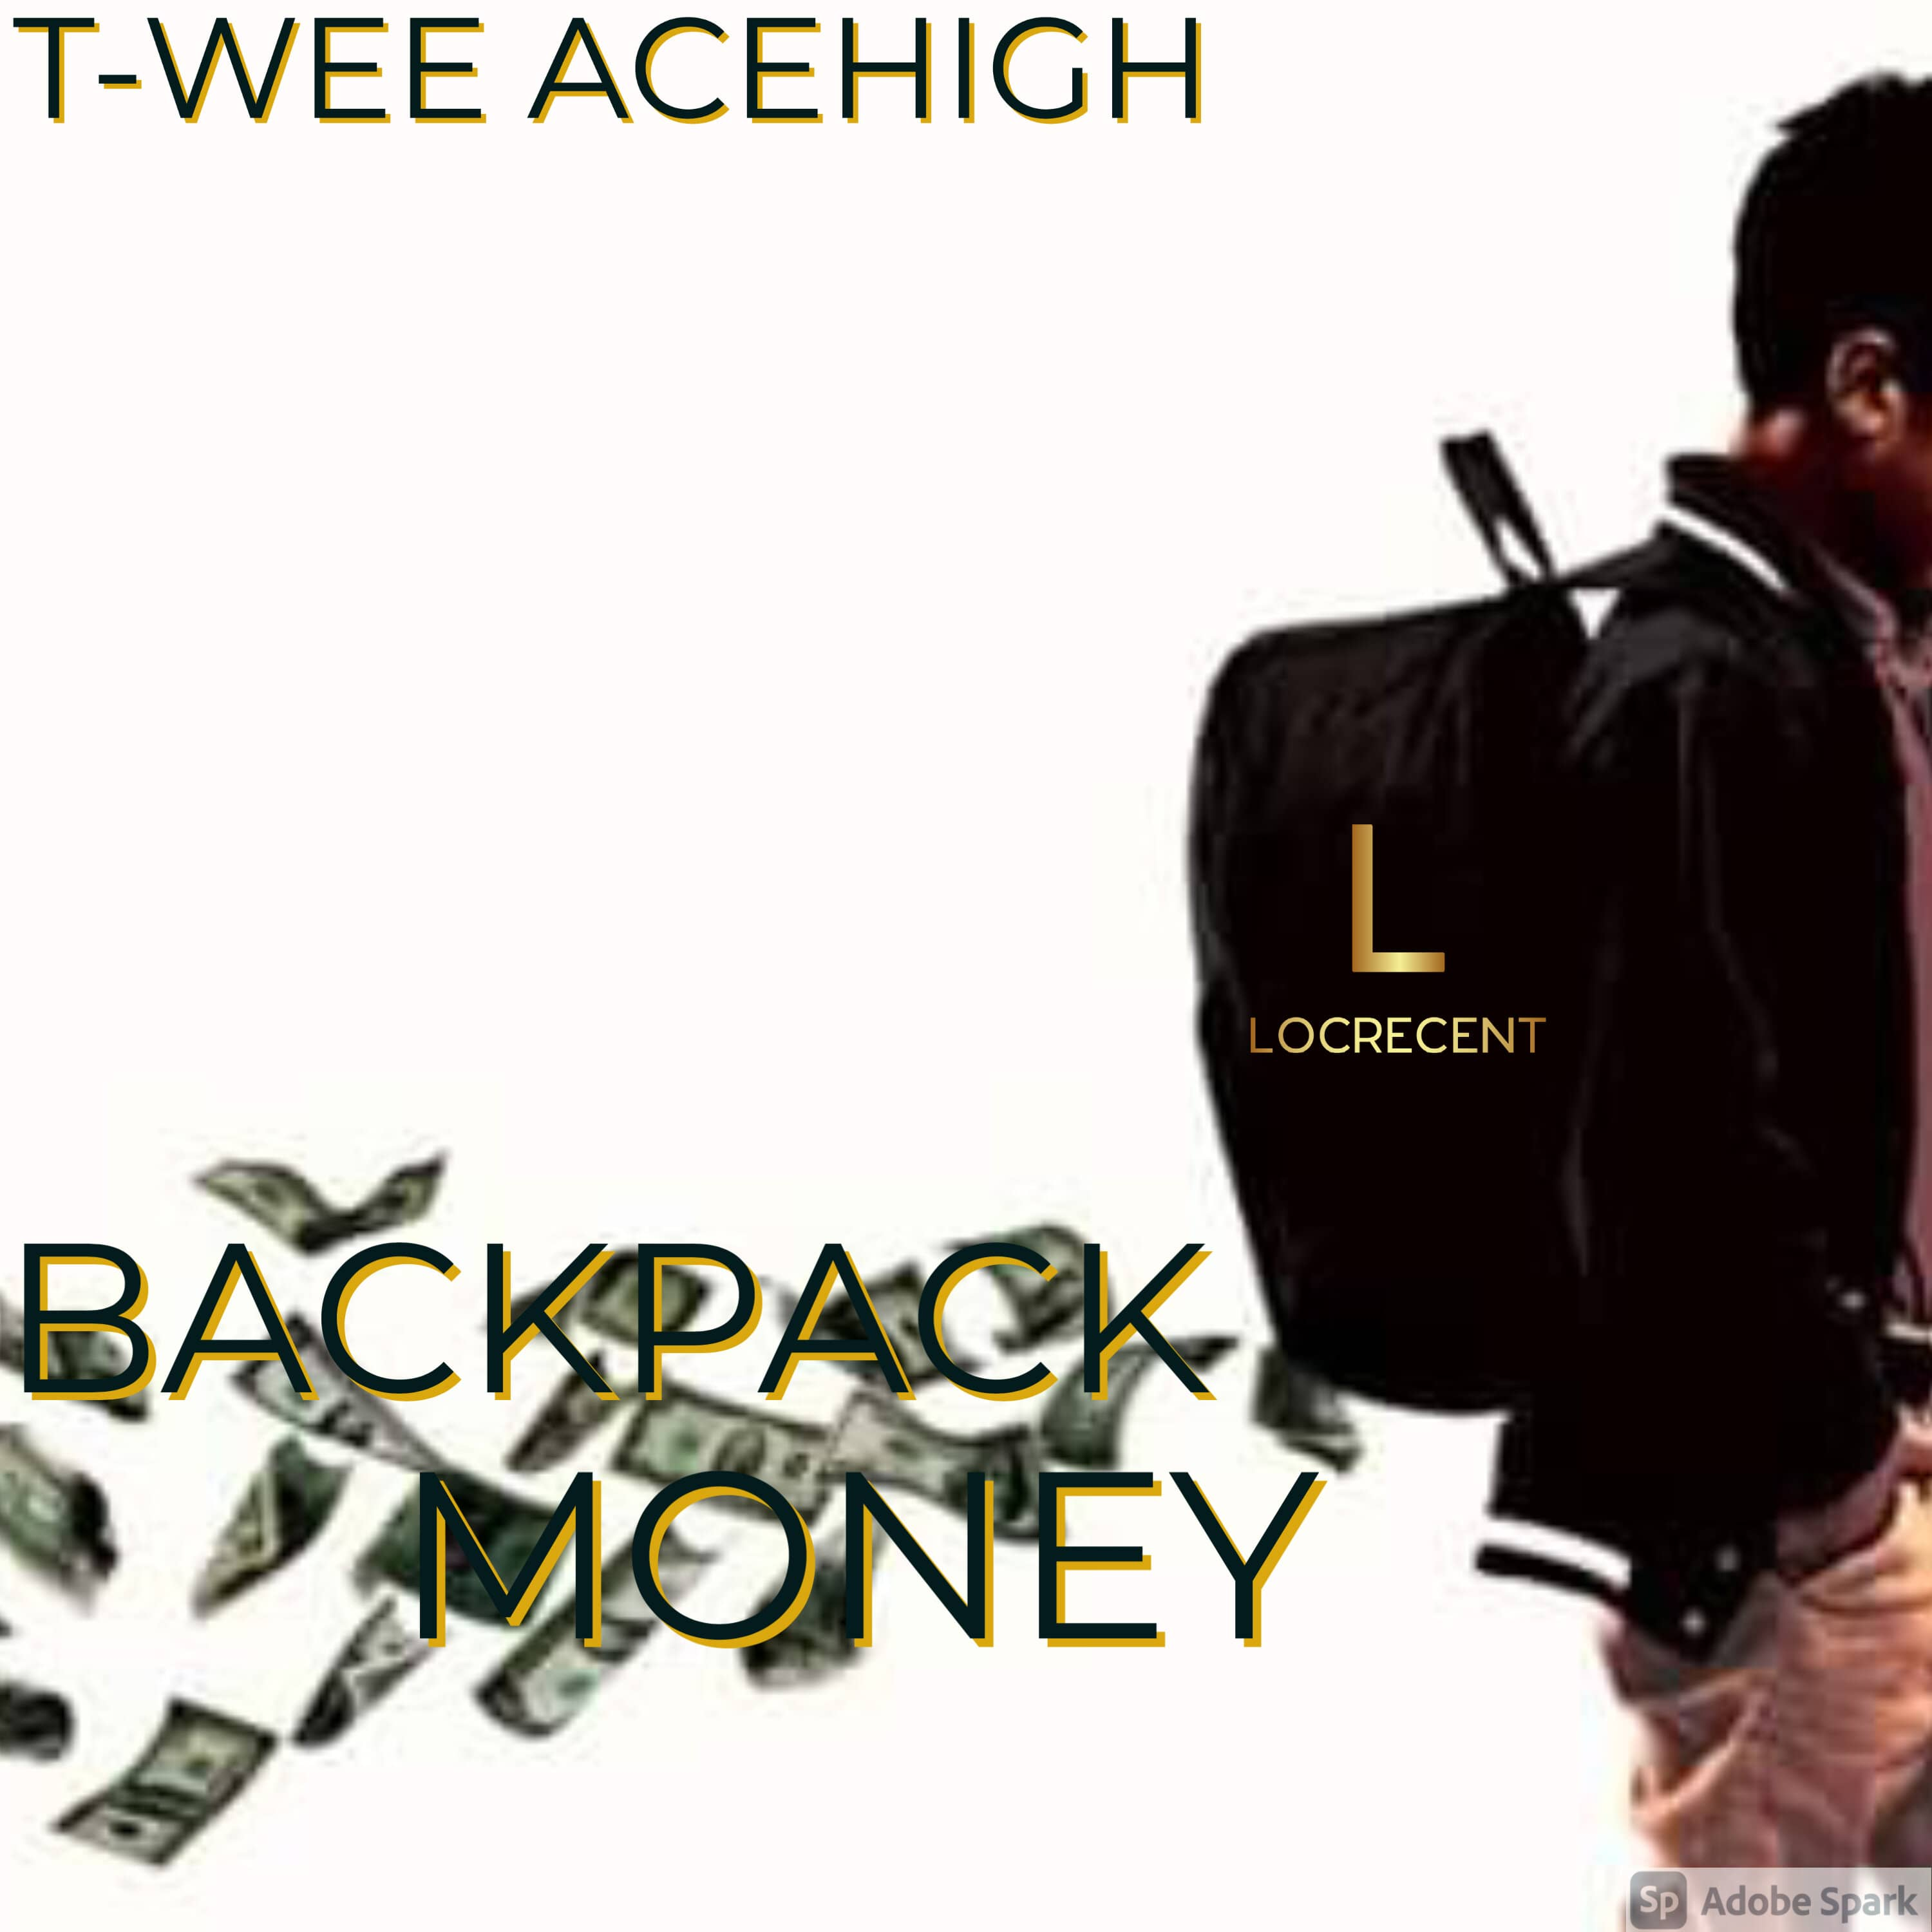 Art for Backpack Money by T-wee Acehigh